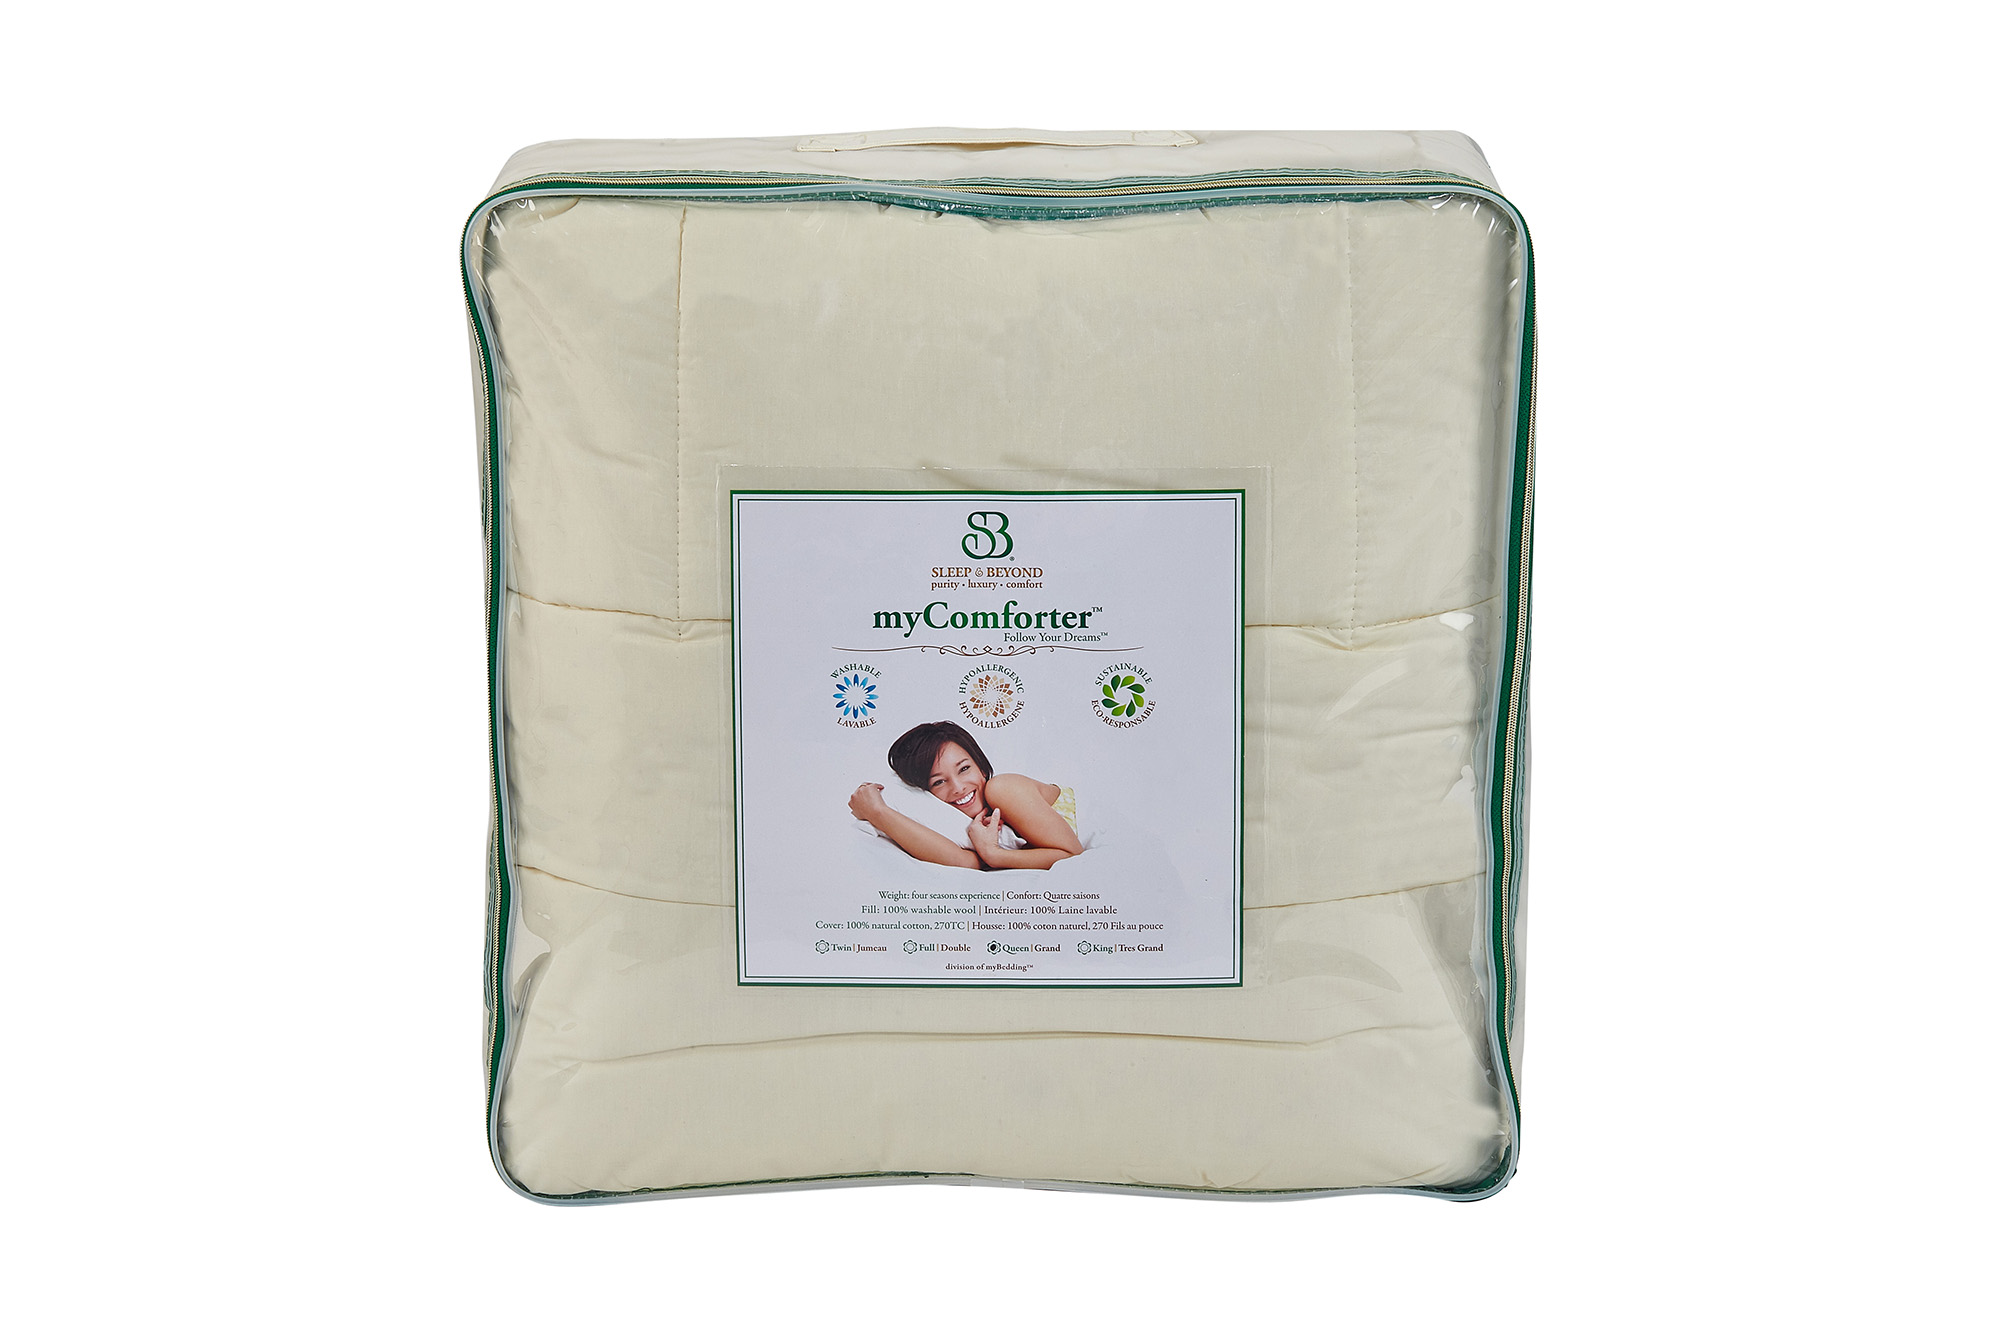 myComforter Front Packaging View